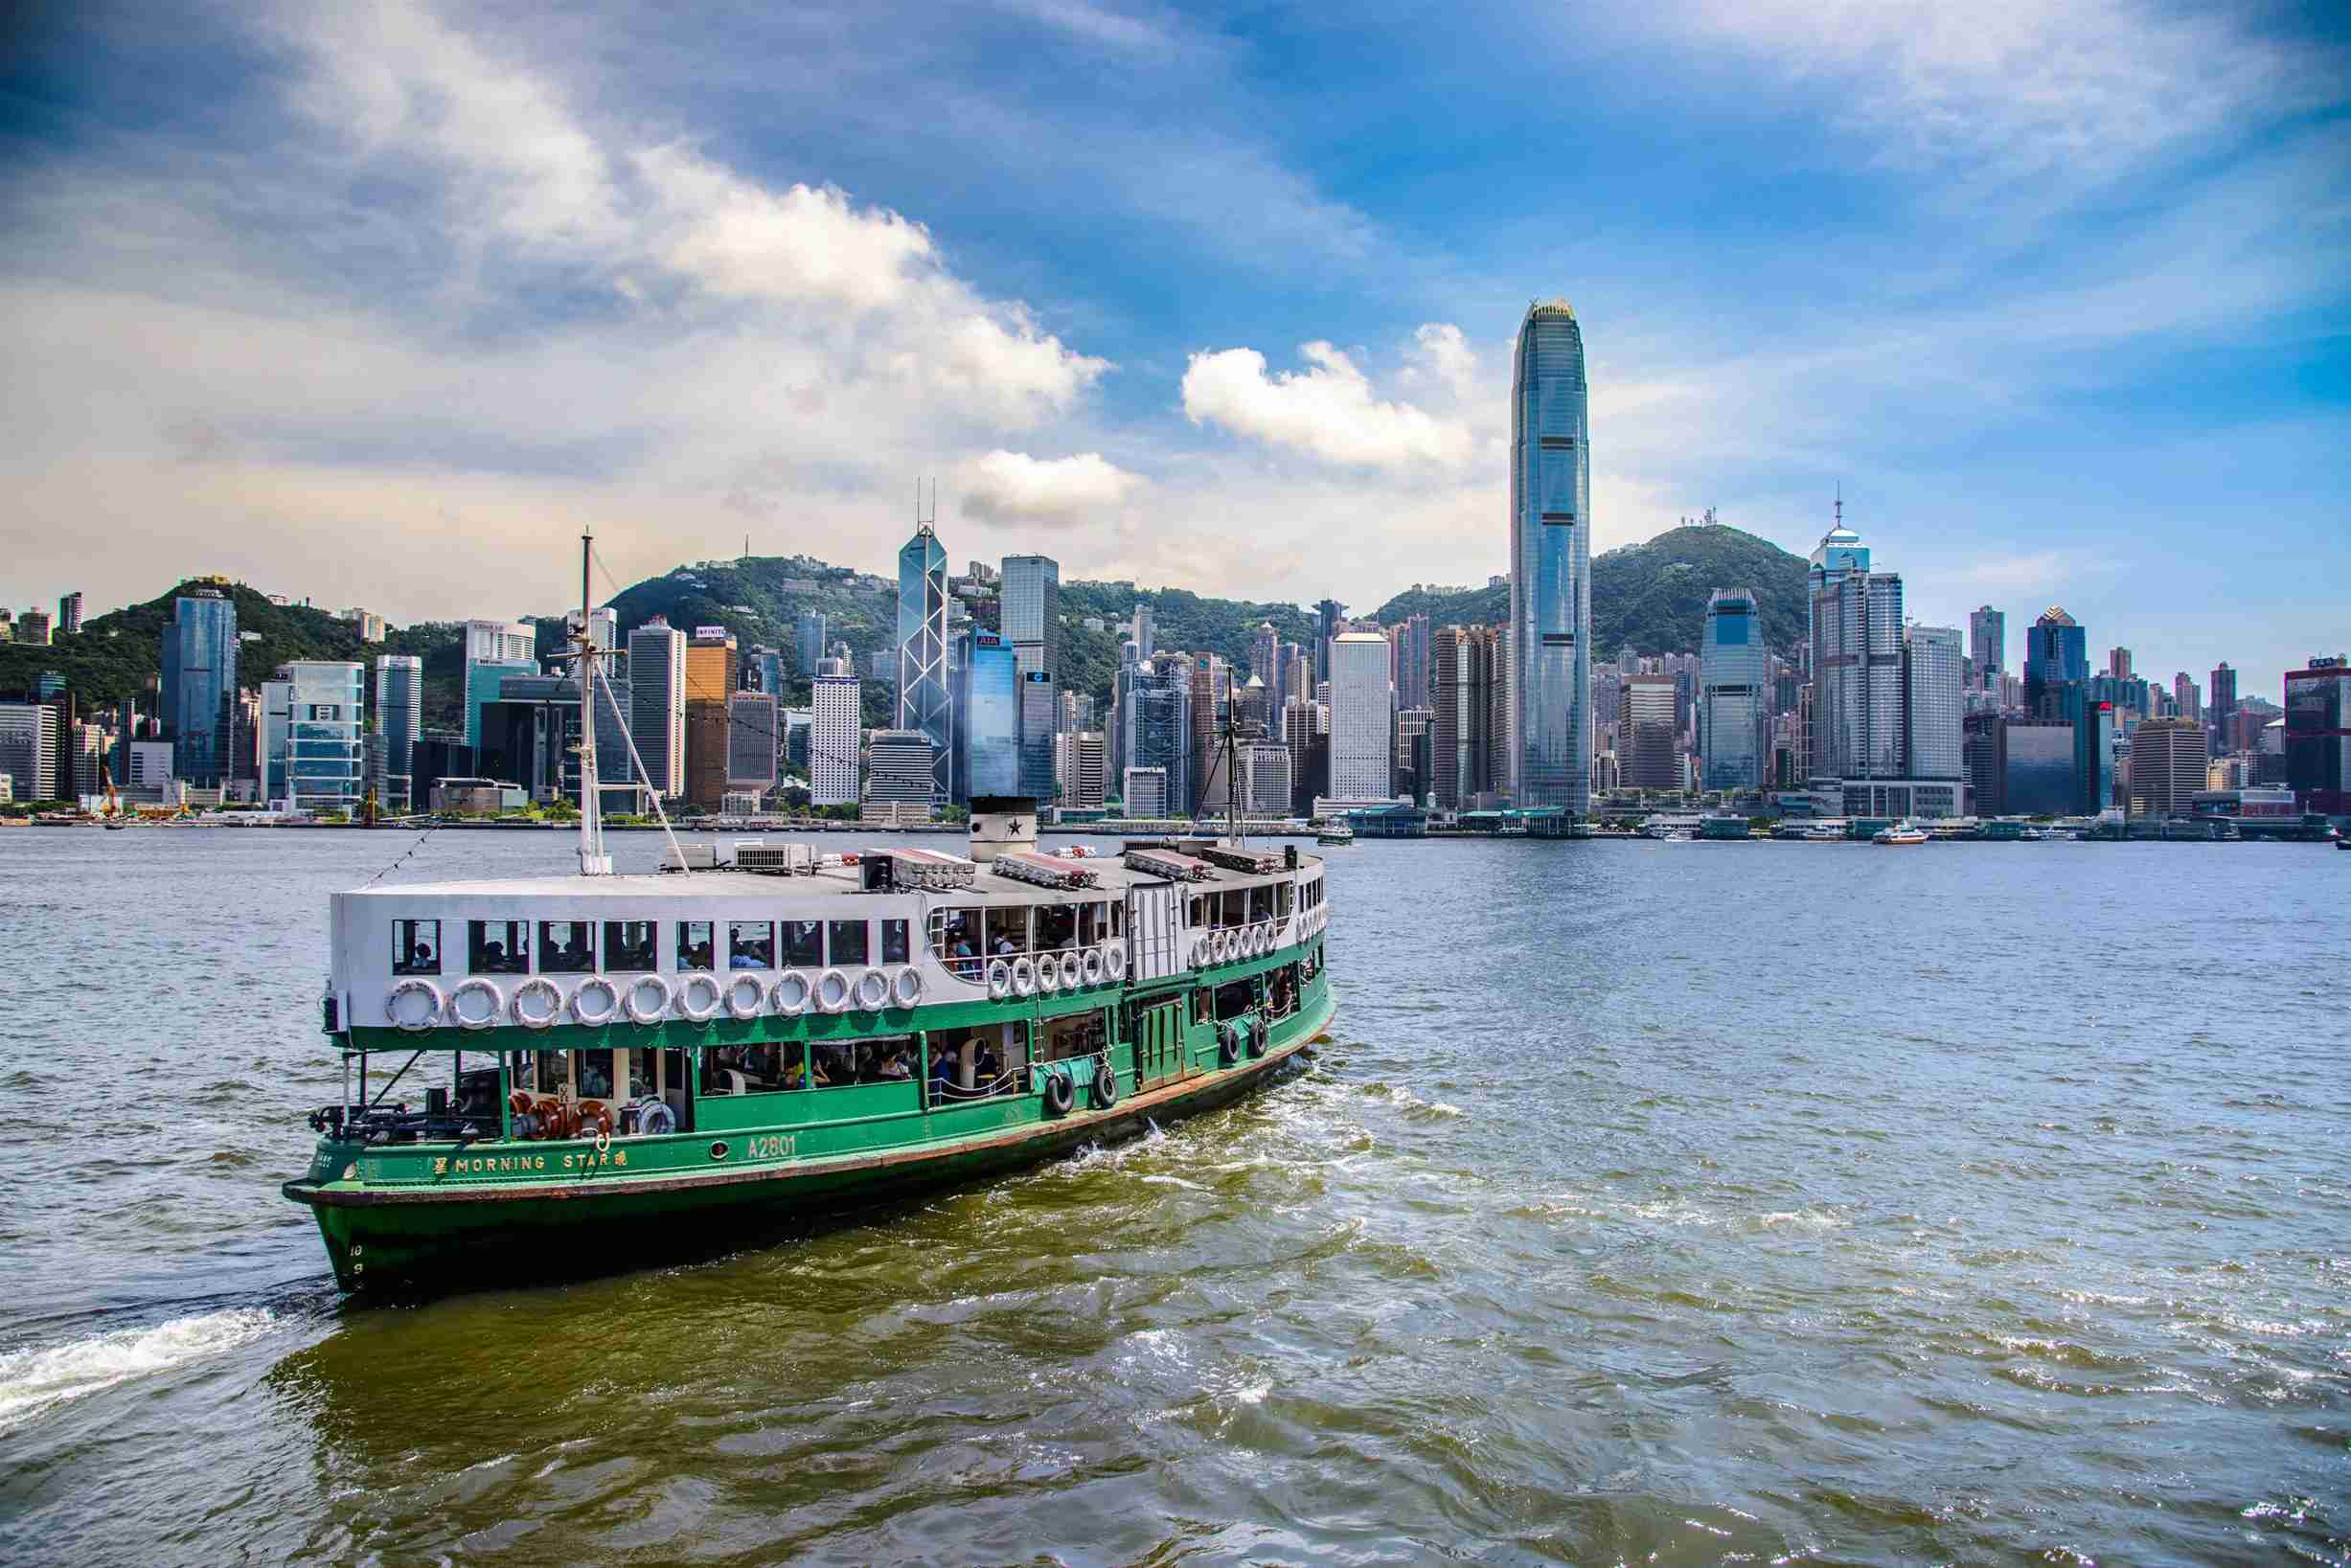 Star Ferry (Photo courtesy of the Hong Kong Tourism Board)